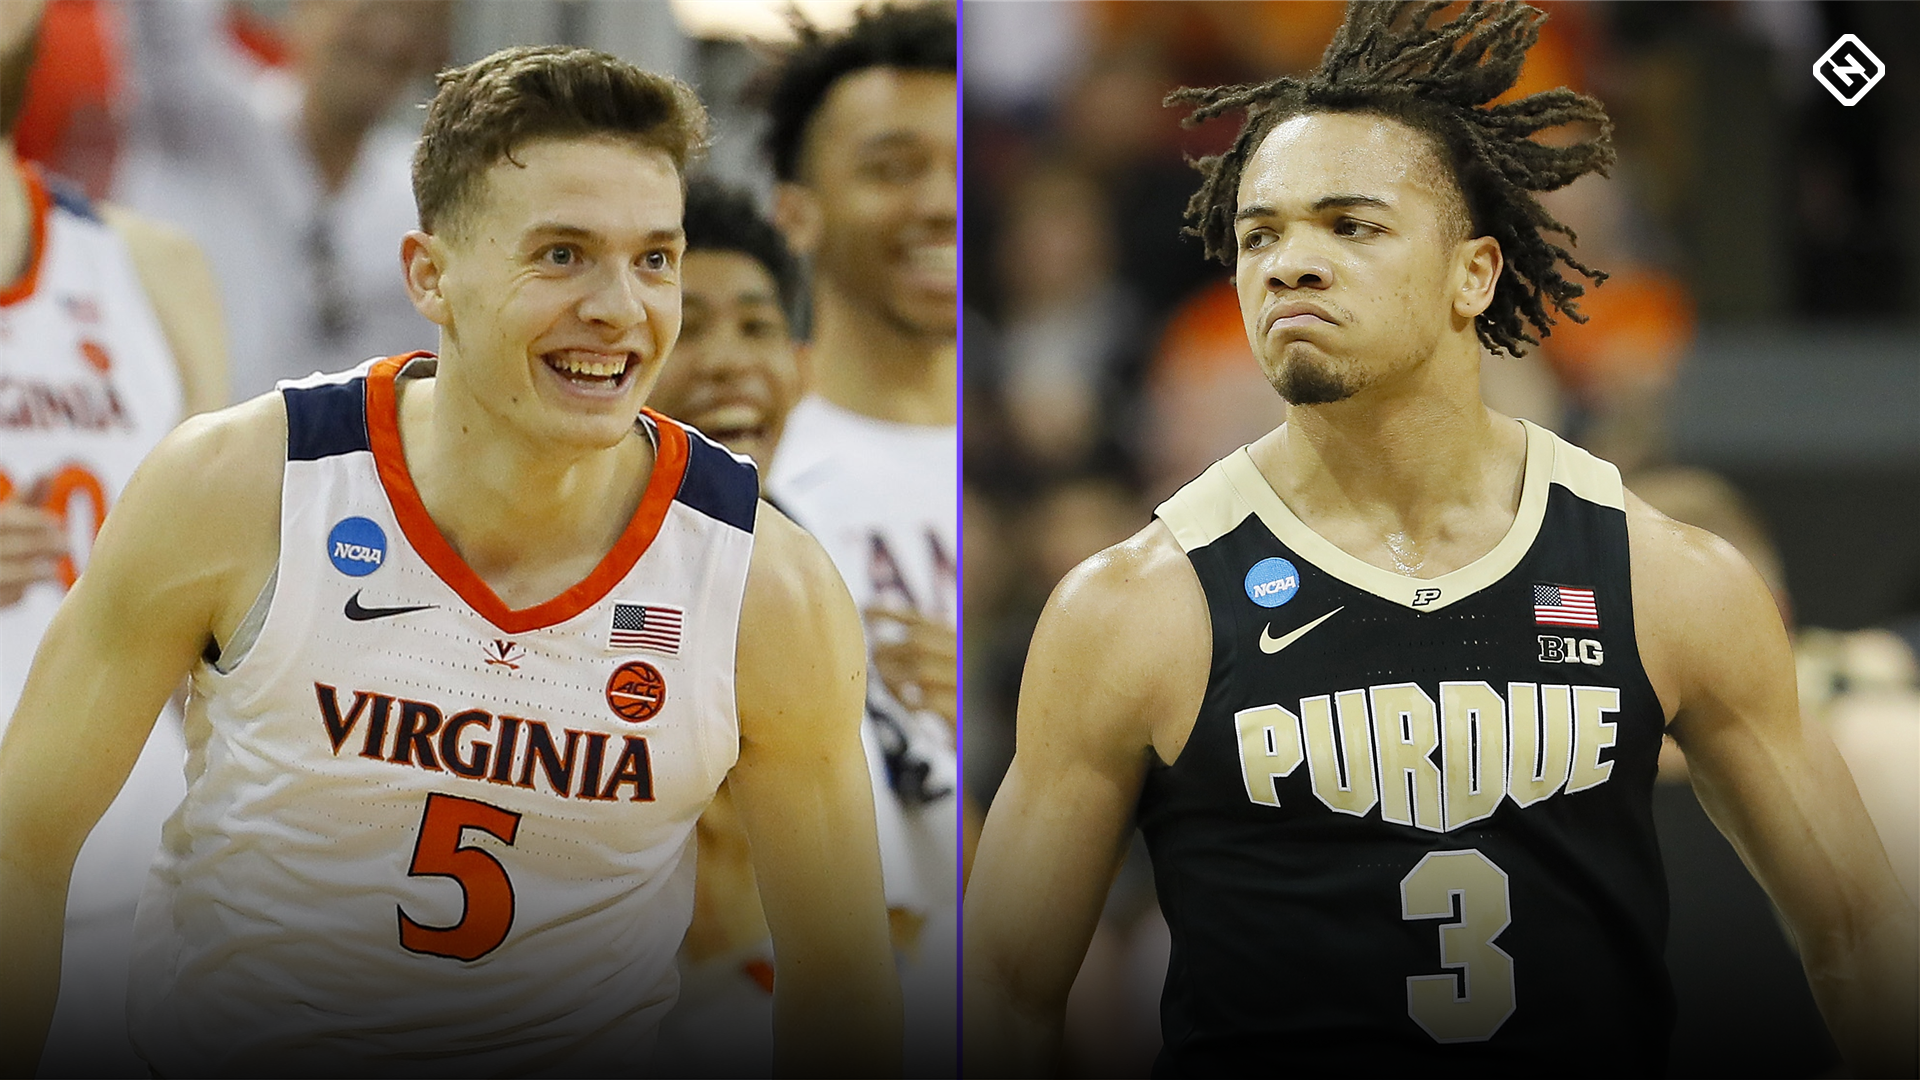 big sale 44611 bc664 Virginia vs. Purdue  Picks, predictions for March Madness Elite Eight  matchup   Sporting News